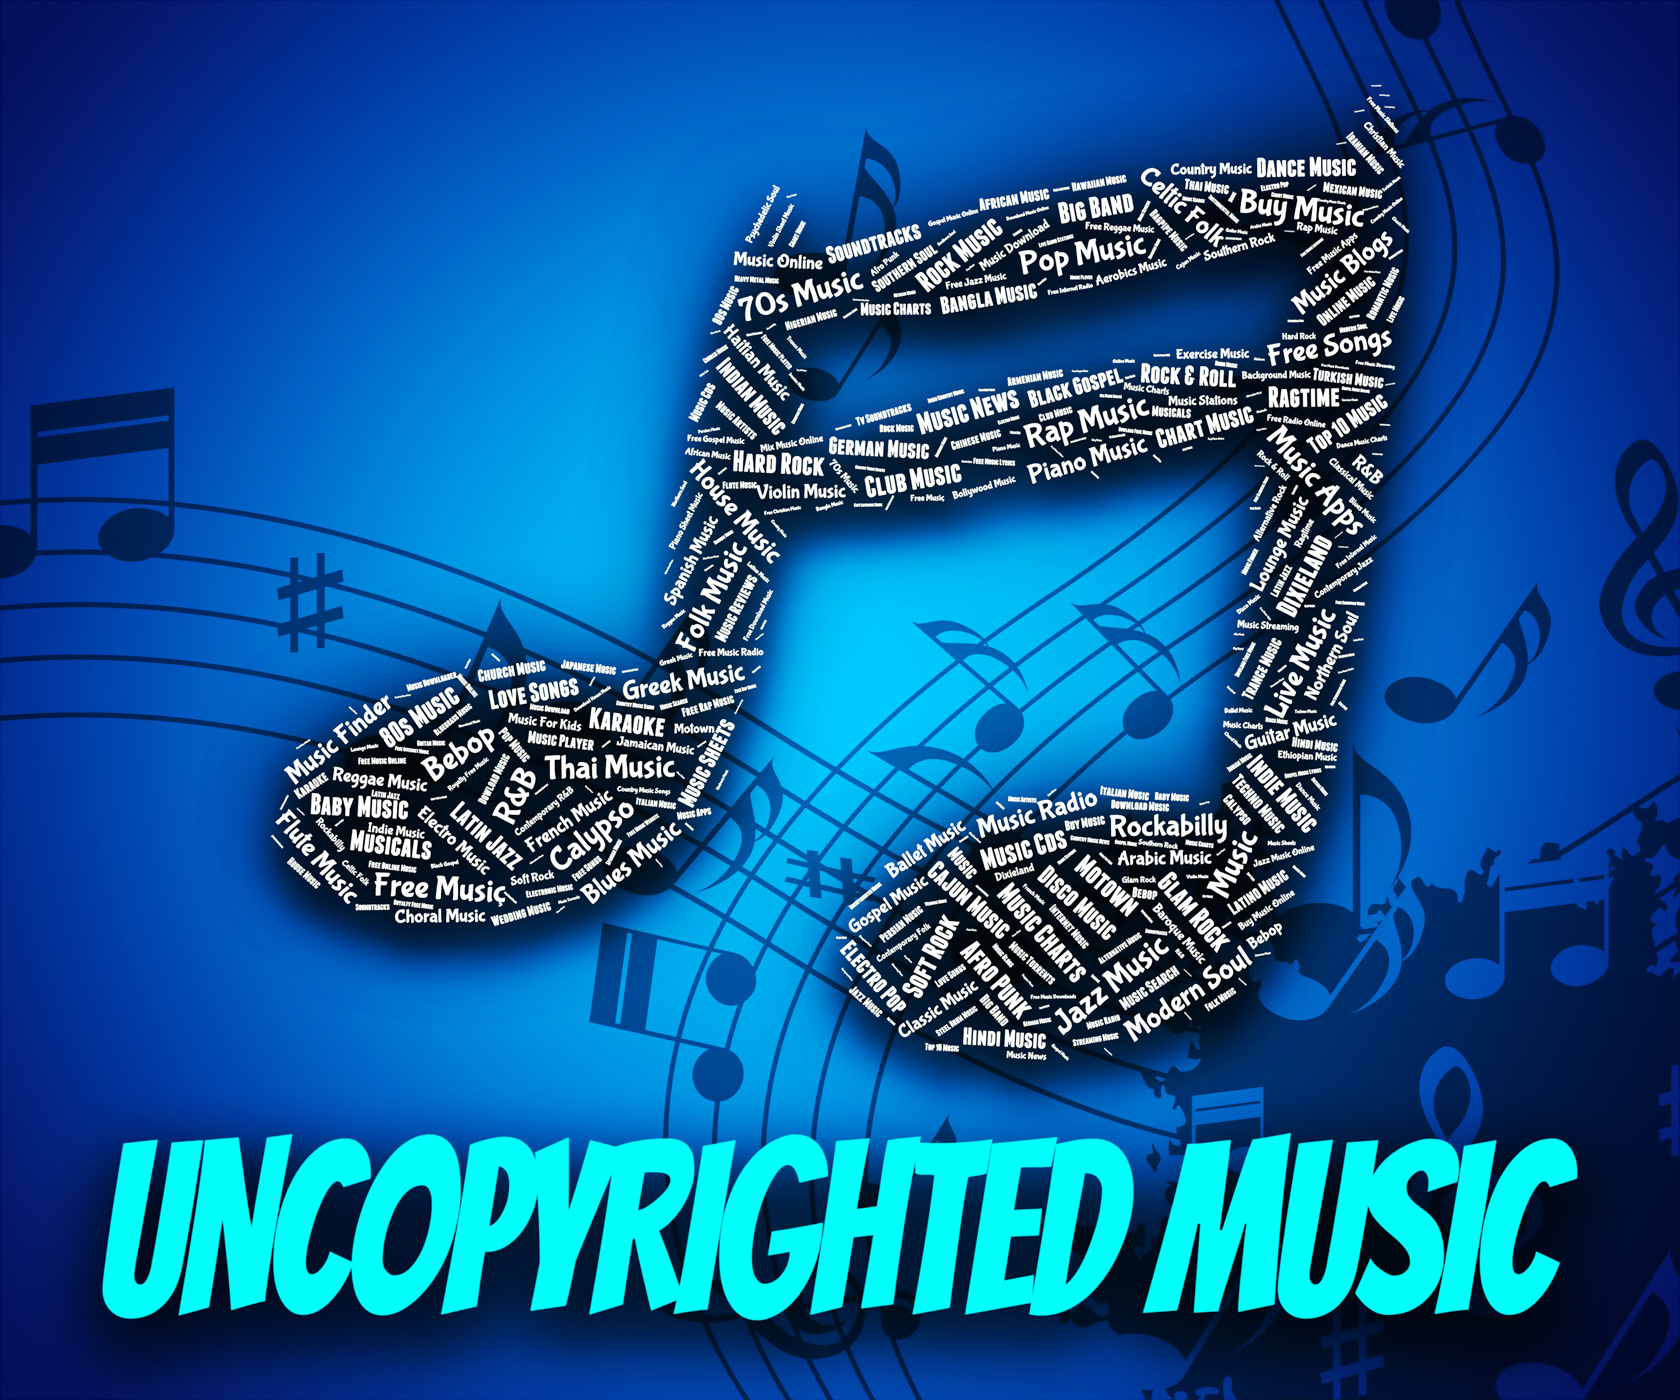 Uncopyrighted music indicates intellectual property rights and c photo